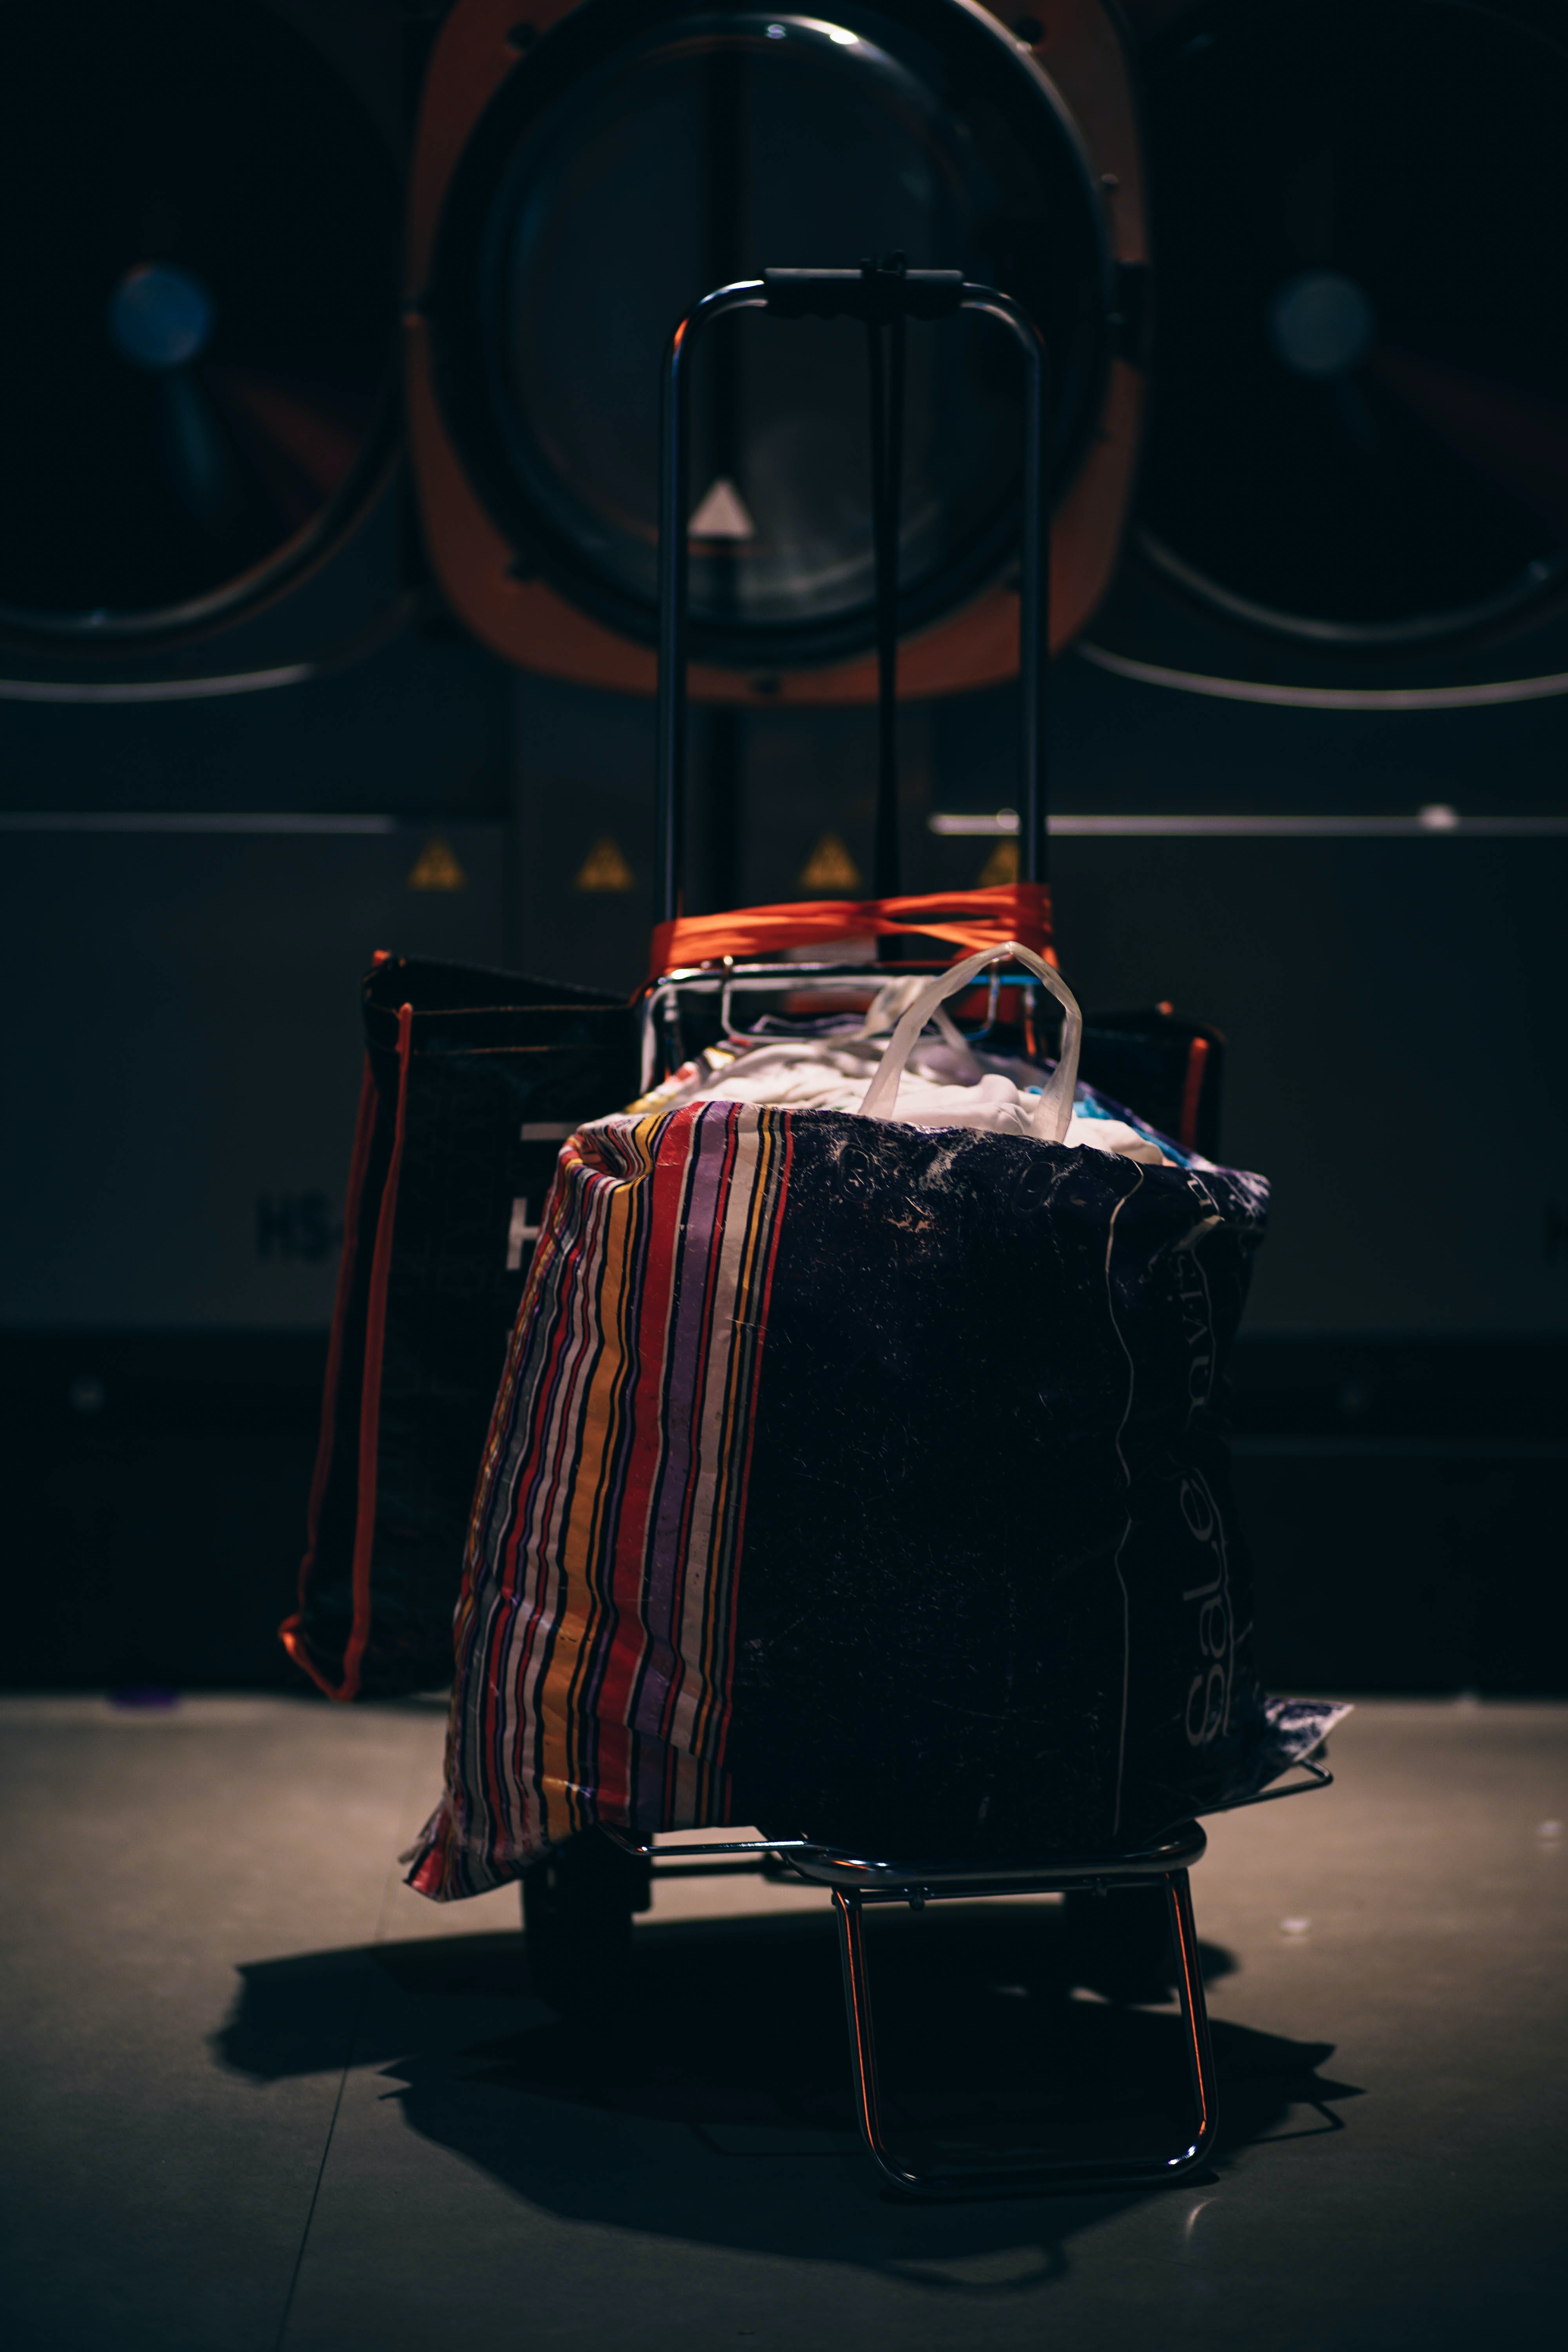 Free stock photo of adult, appliance, automate, basket